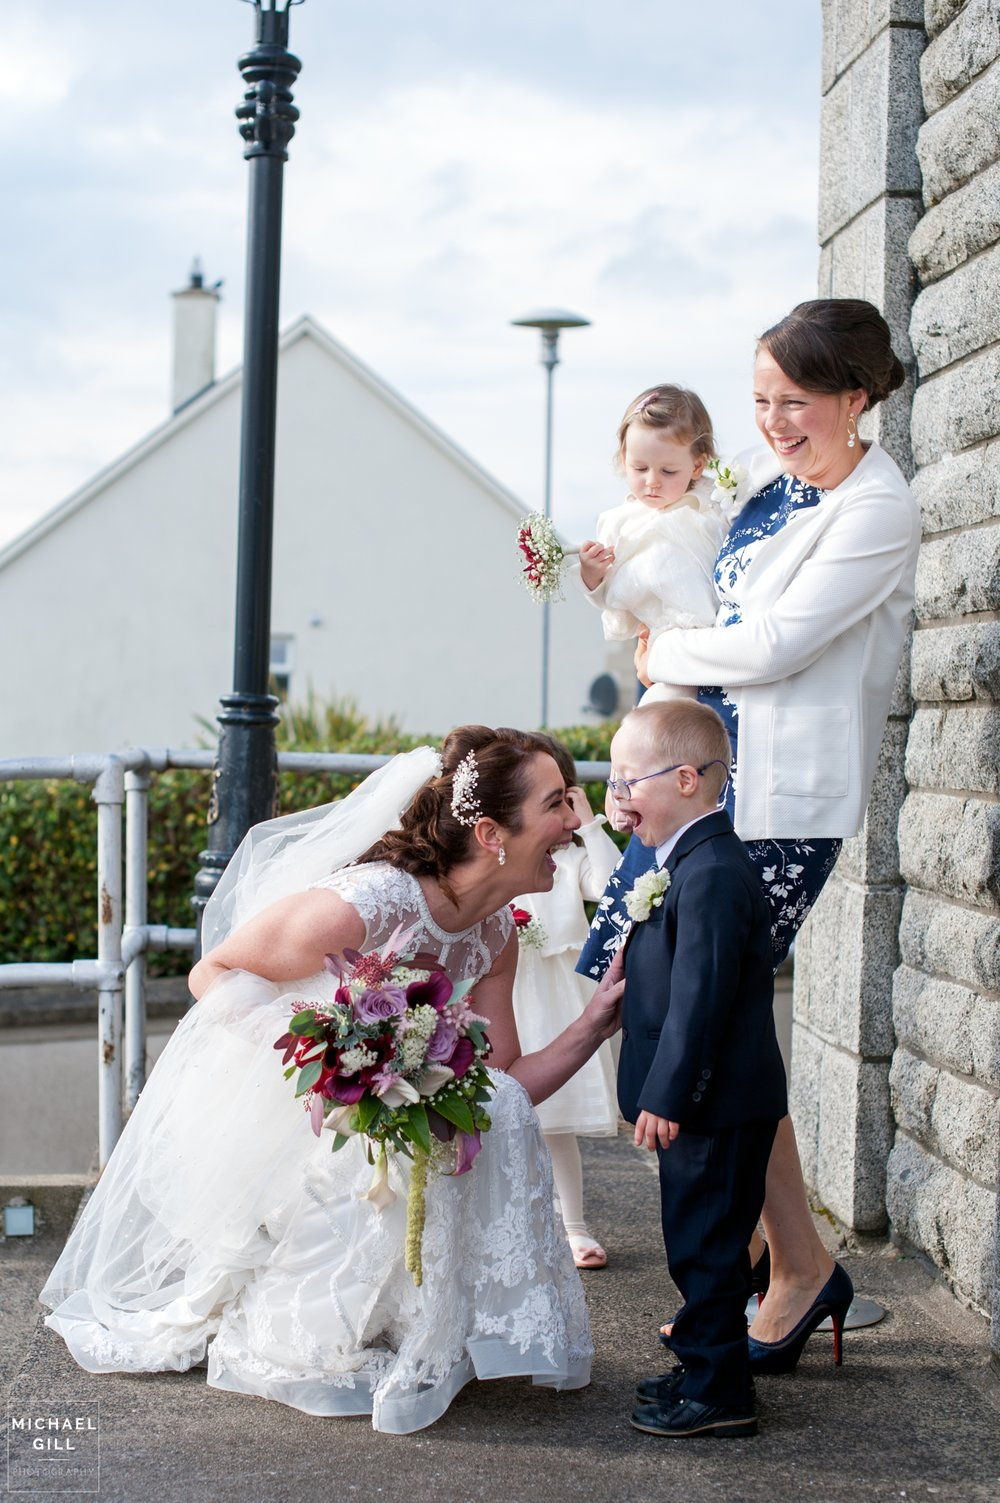 Michael_Gill_Photography_Kinnego_Redcastle_Hotel_Wedding4.jpg